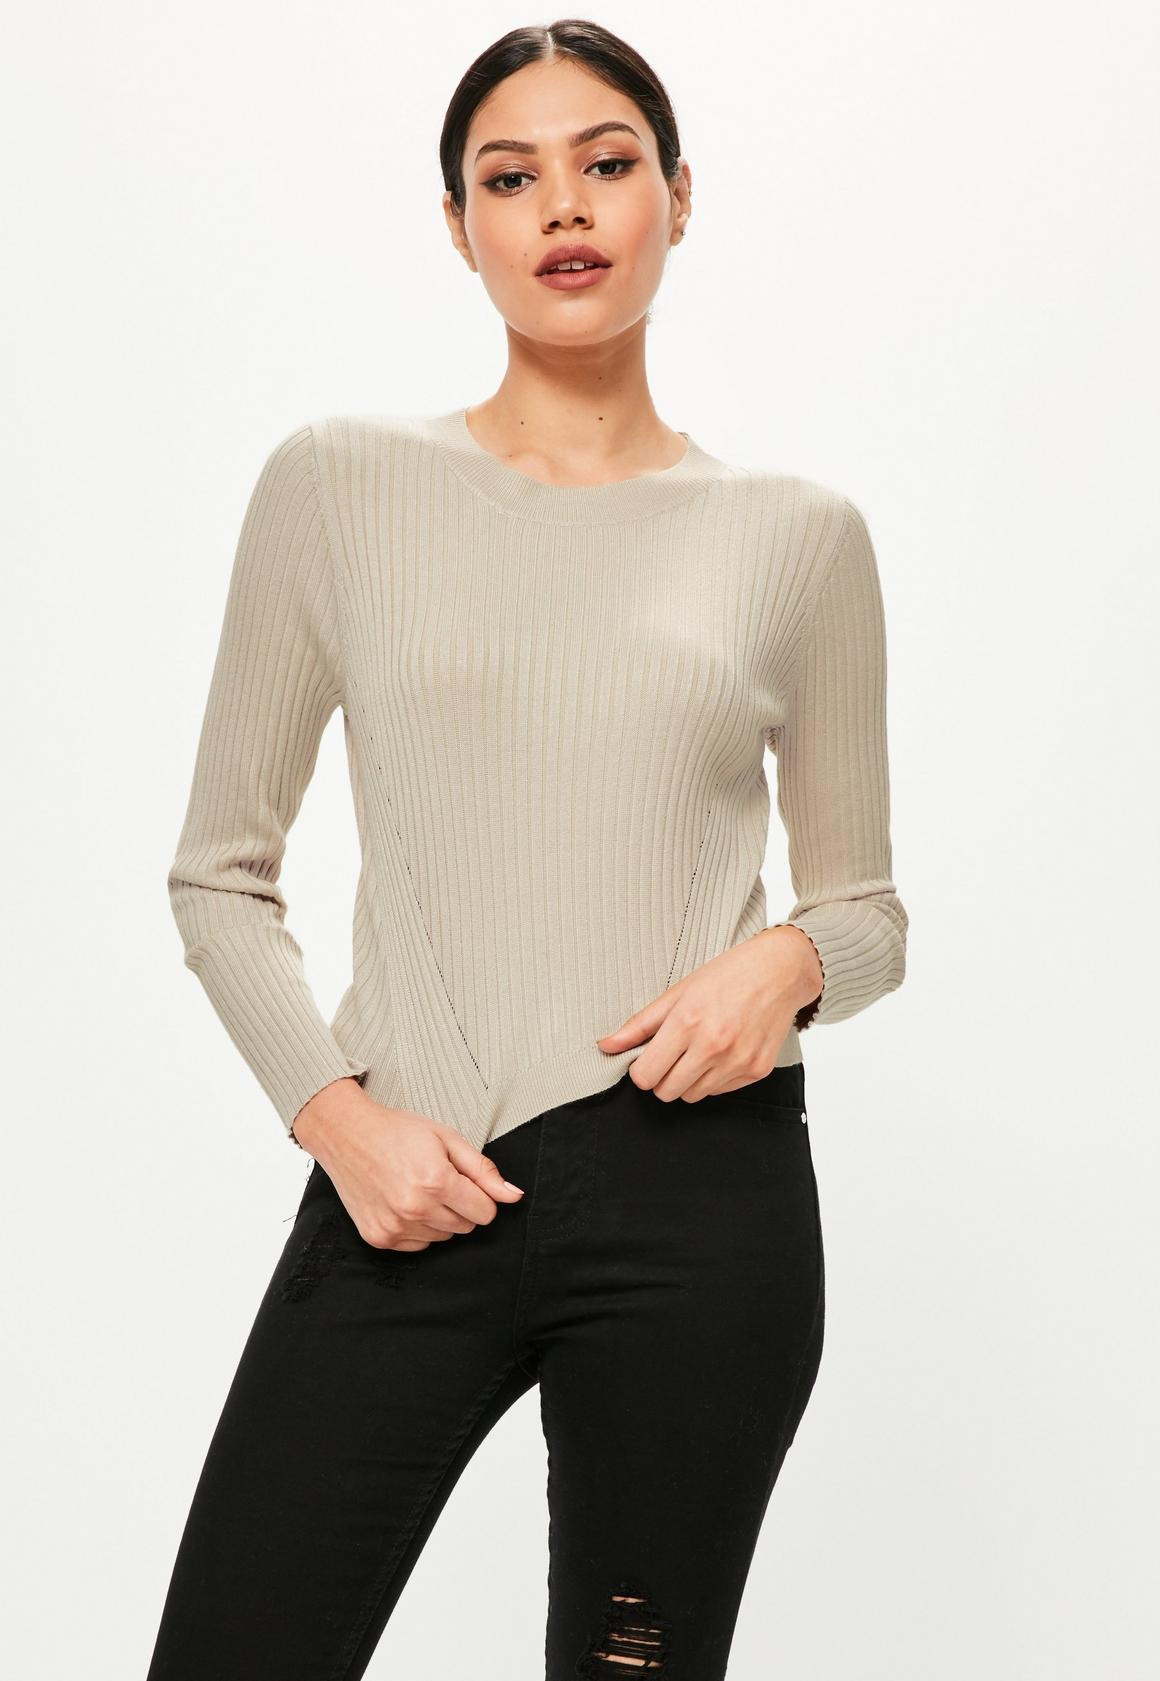 Cropped Sweaters - Knitted Crop Tops Online   Missguided